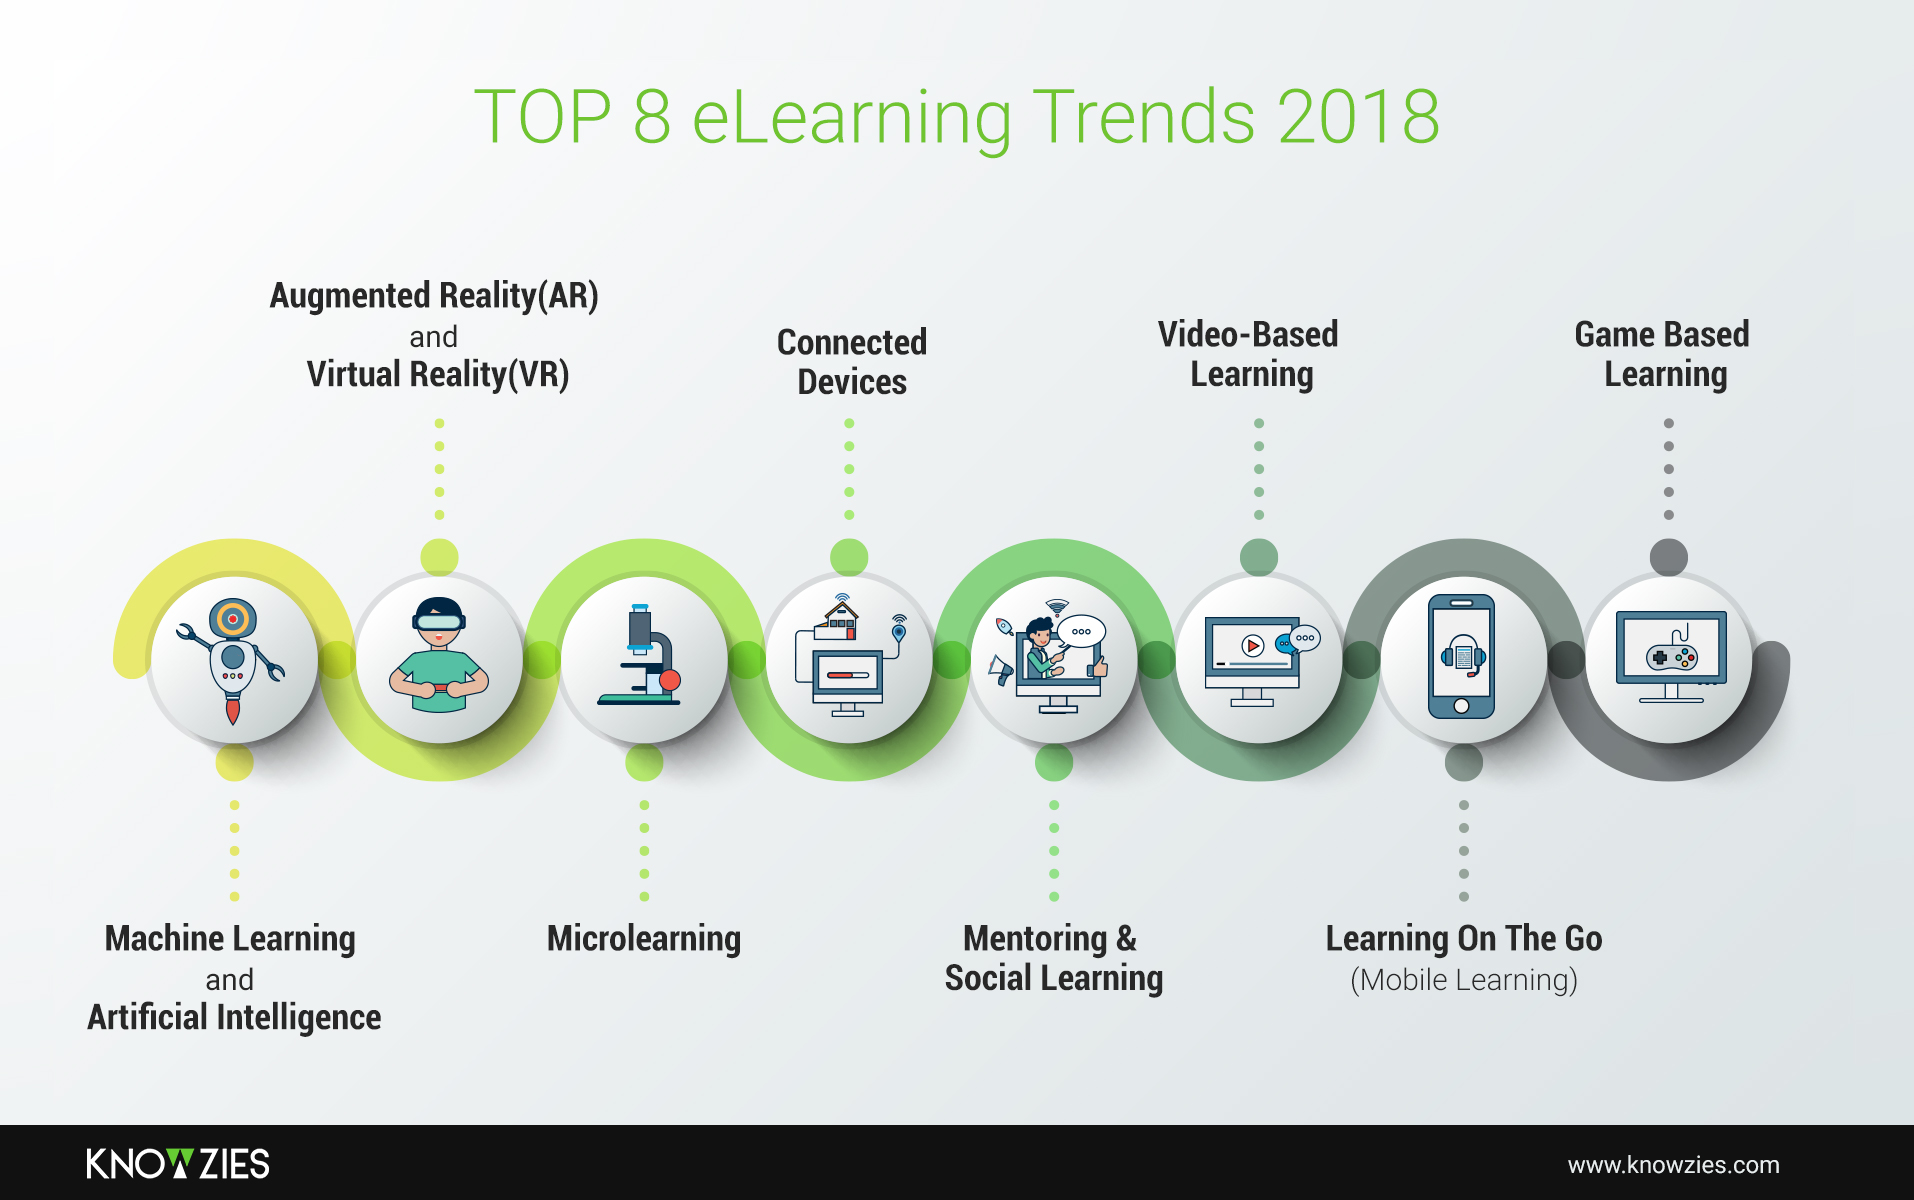 Top 8 eLearning Trends 2018